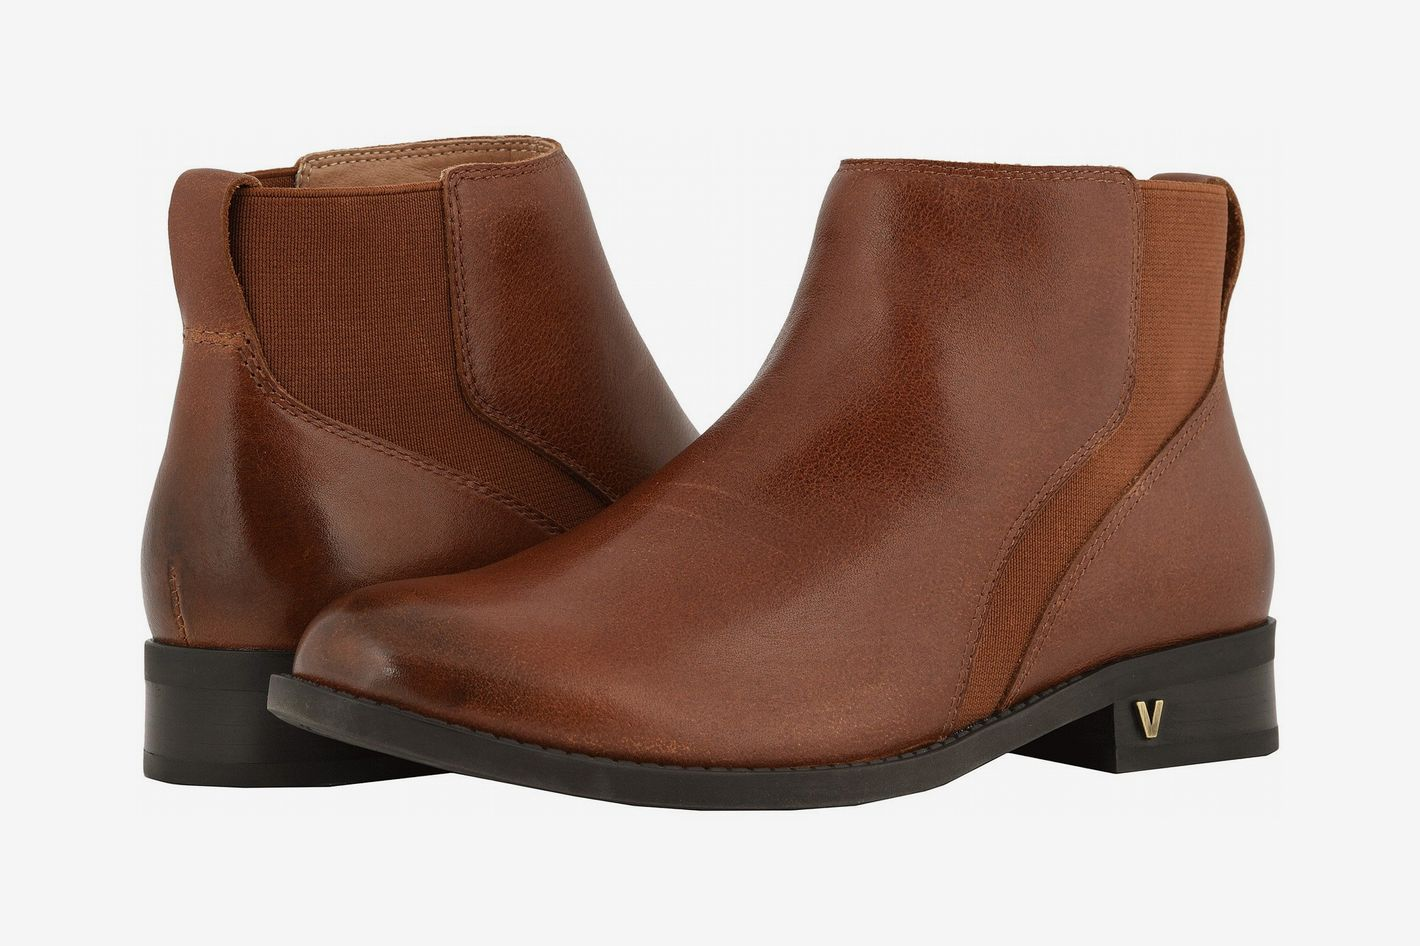 ee69cdd04ff9b 31 Best Chelsea Boots 2018